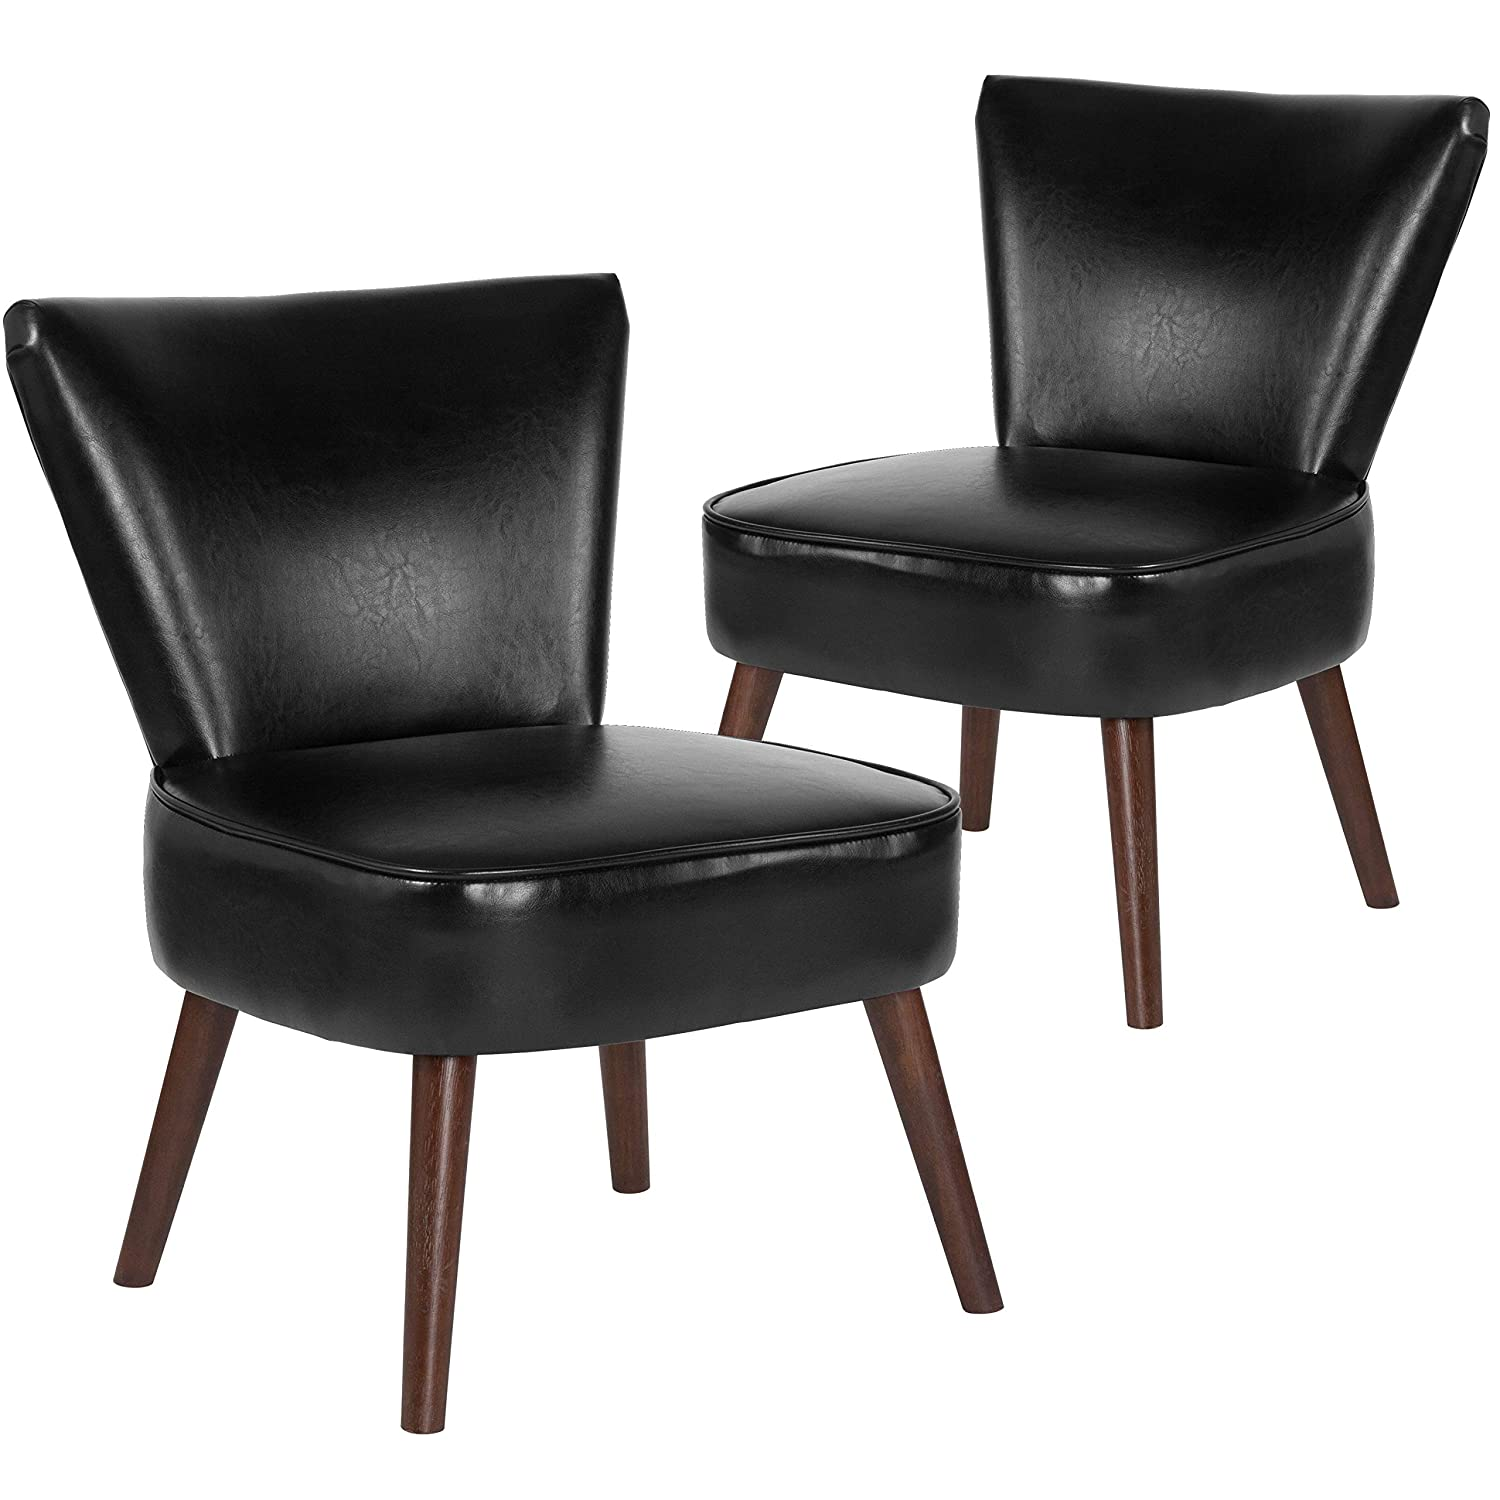 Flash Furniture 2 Pk. HERCULES Holloway Series Black Leather Retro Chair